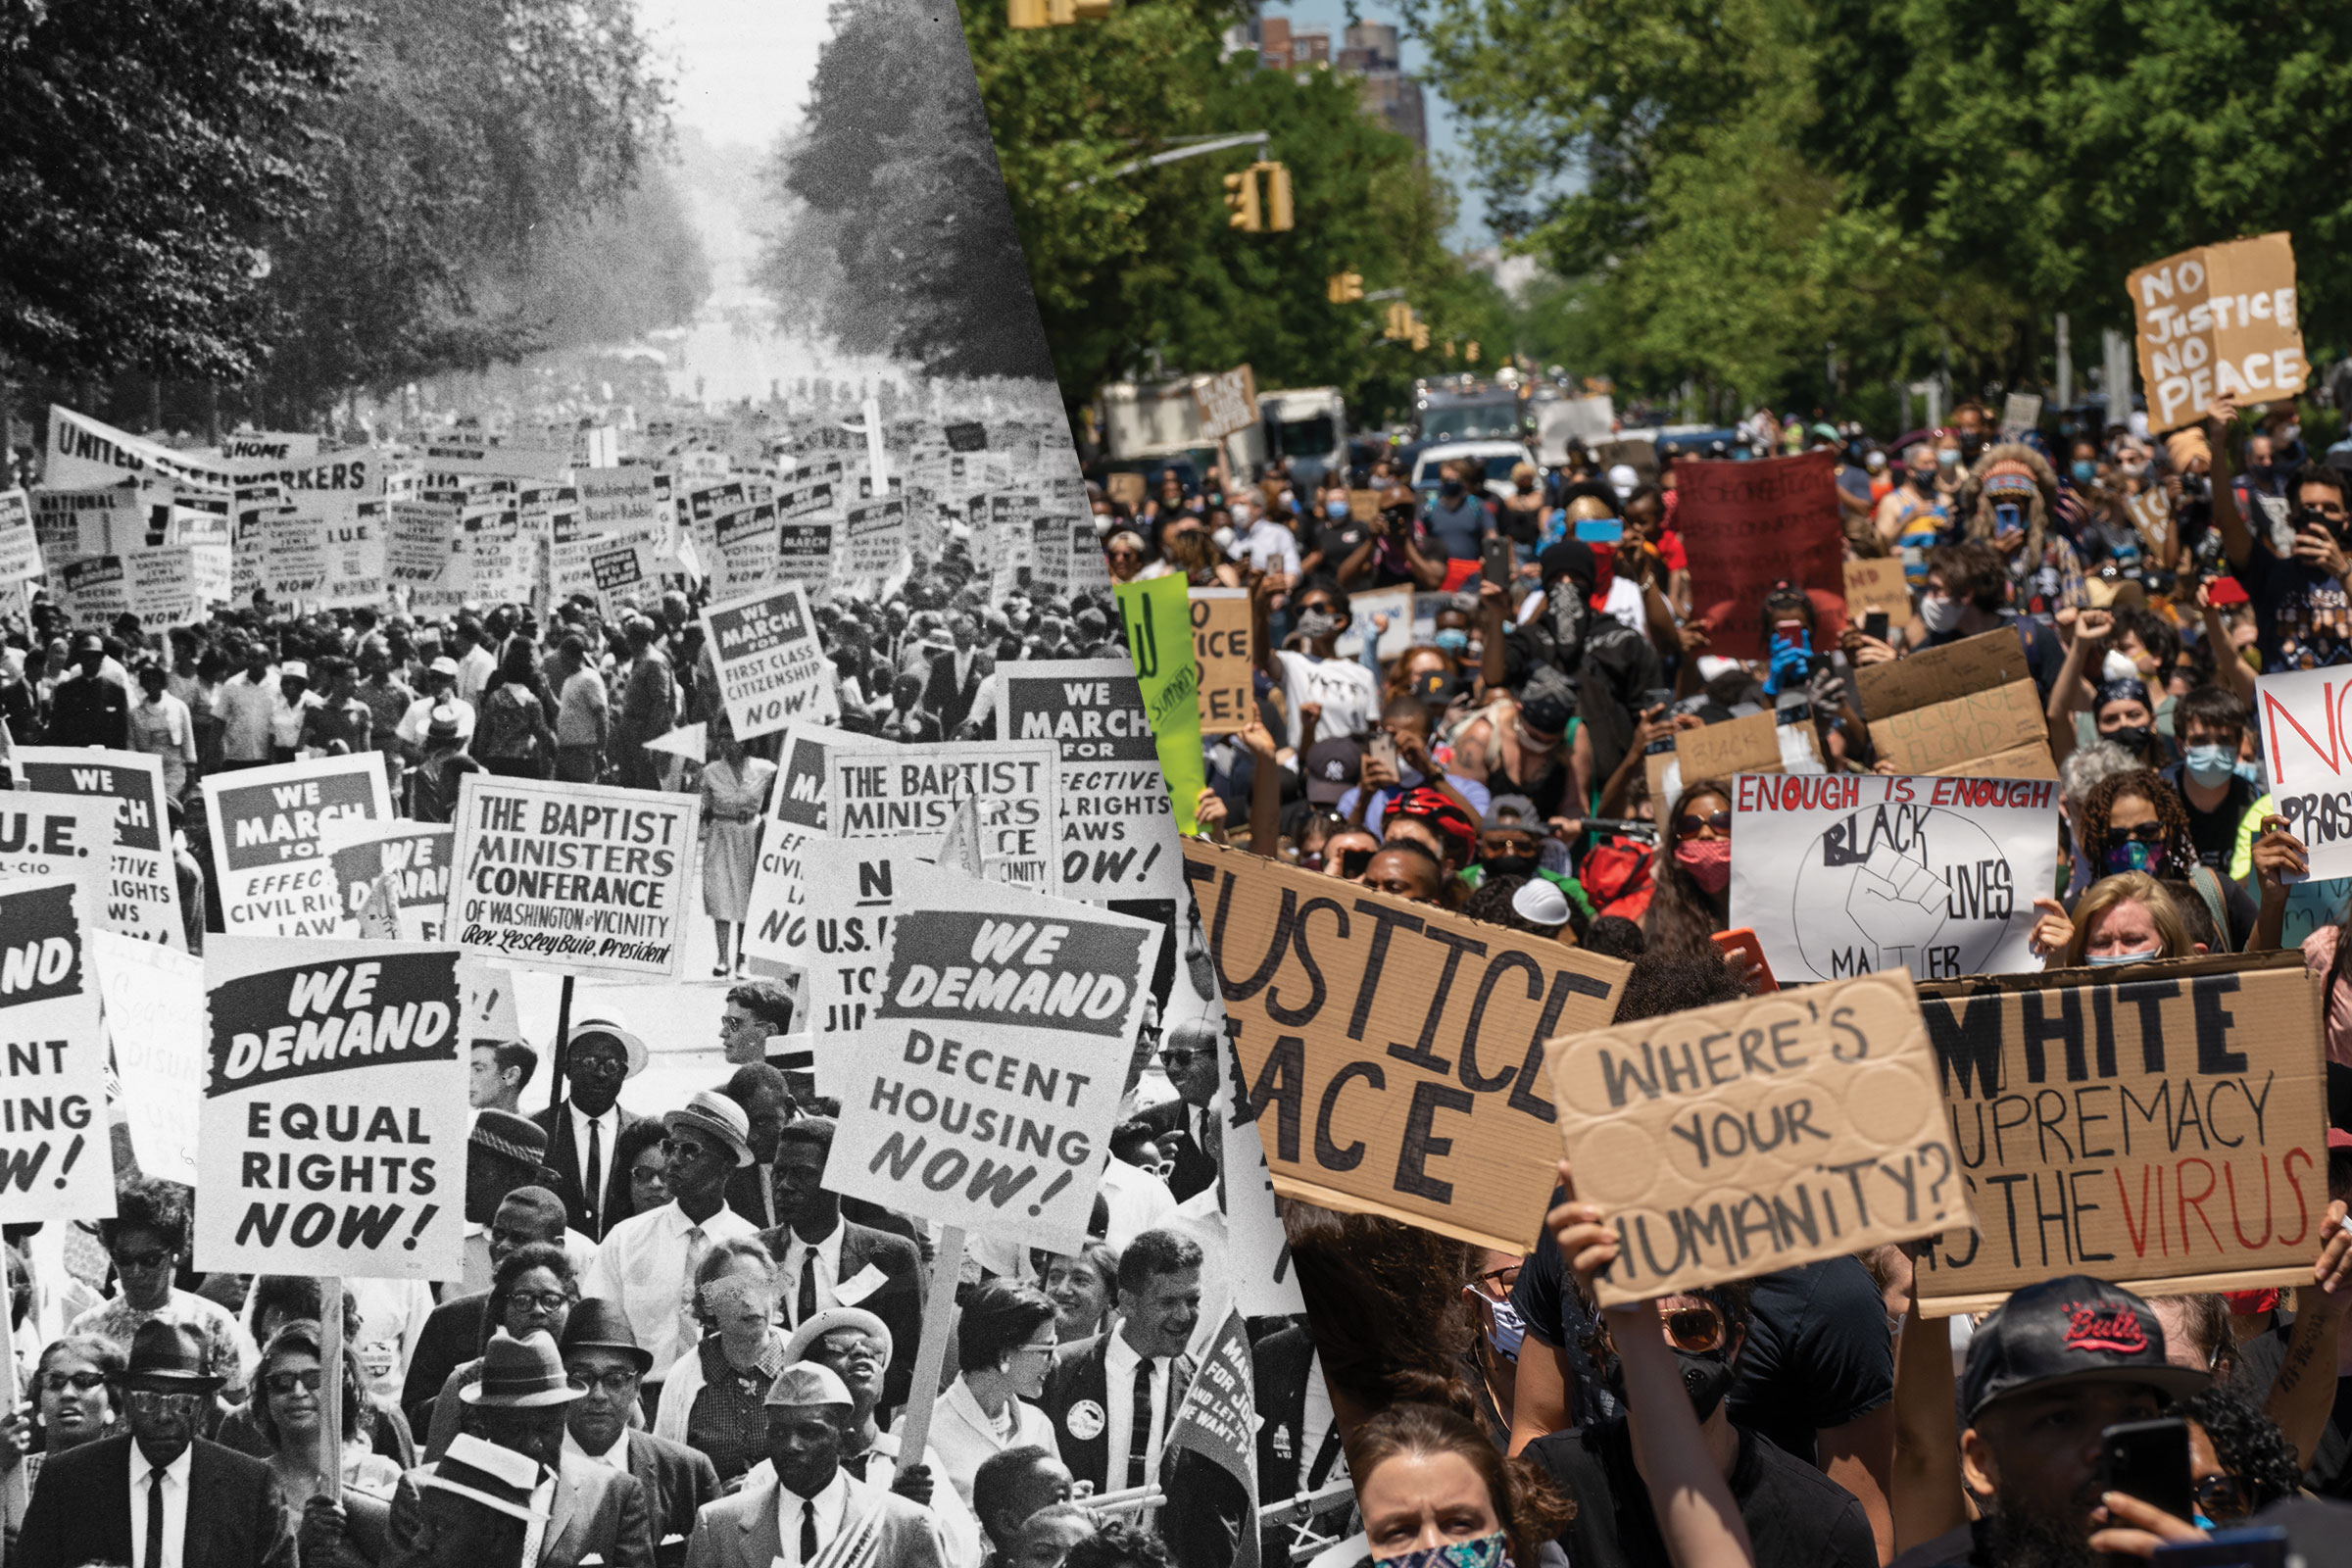 Left: Between 200,000 and 500,000 demonstrators march down Constitution Avenue during the March on Washington for Jobs and Freedom, Washington D.C., Aug. 28, 1963; Right: Protesters gather in Harlem to protest the recent death of George Floyd on May 30, 2020 in New York City.